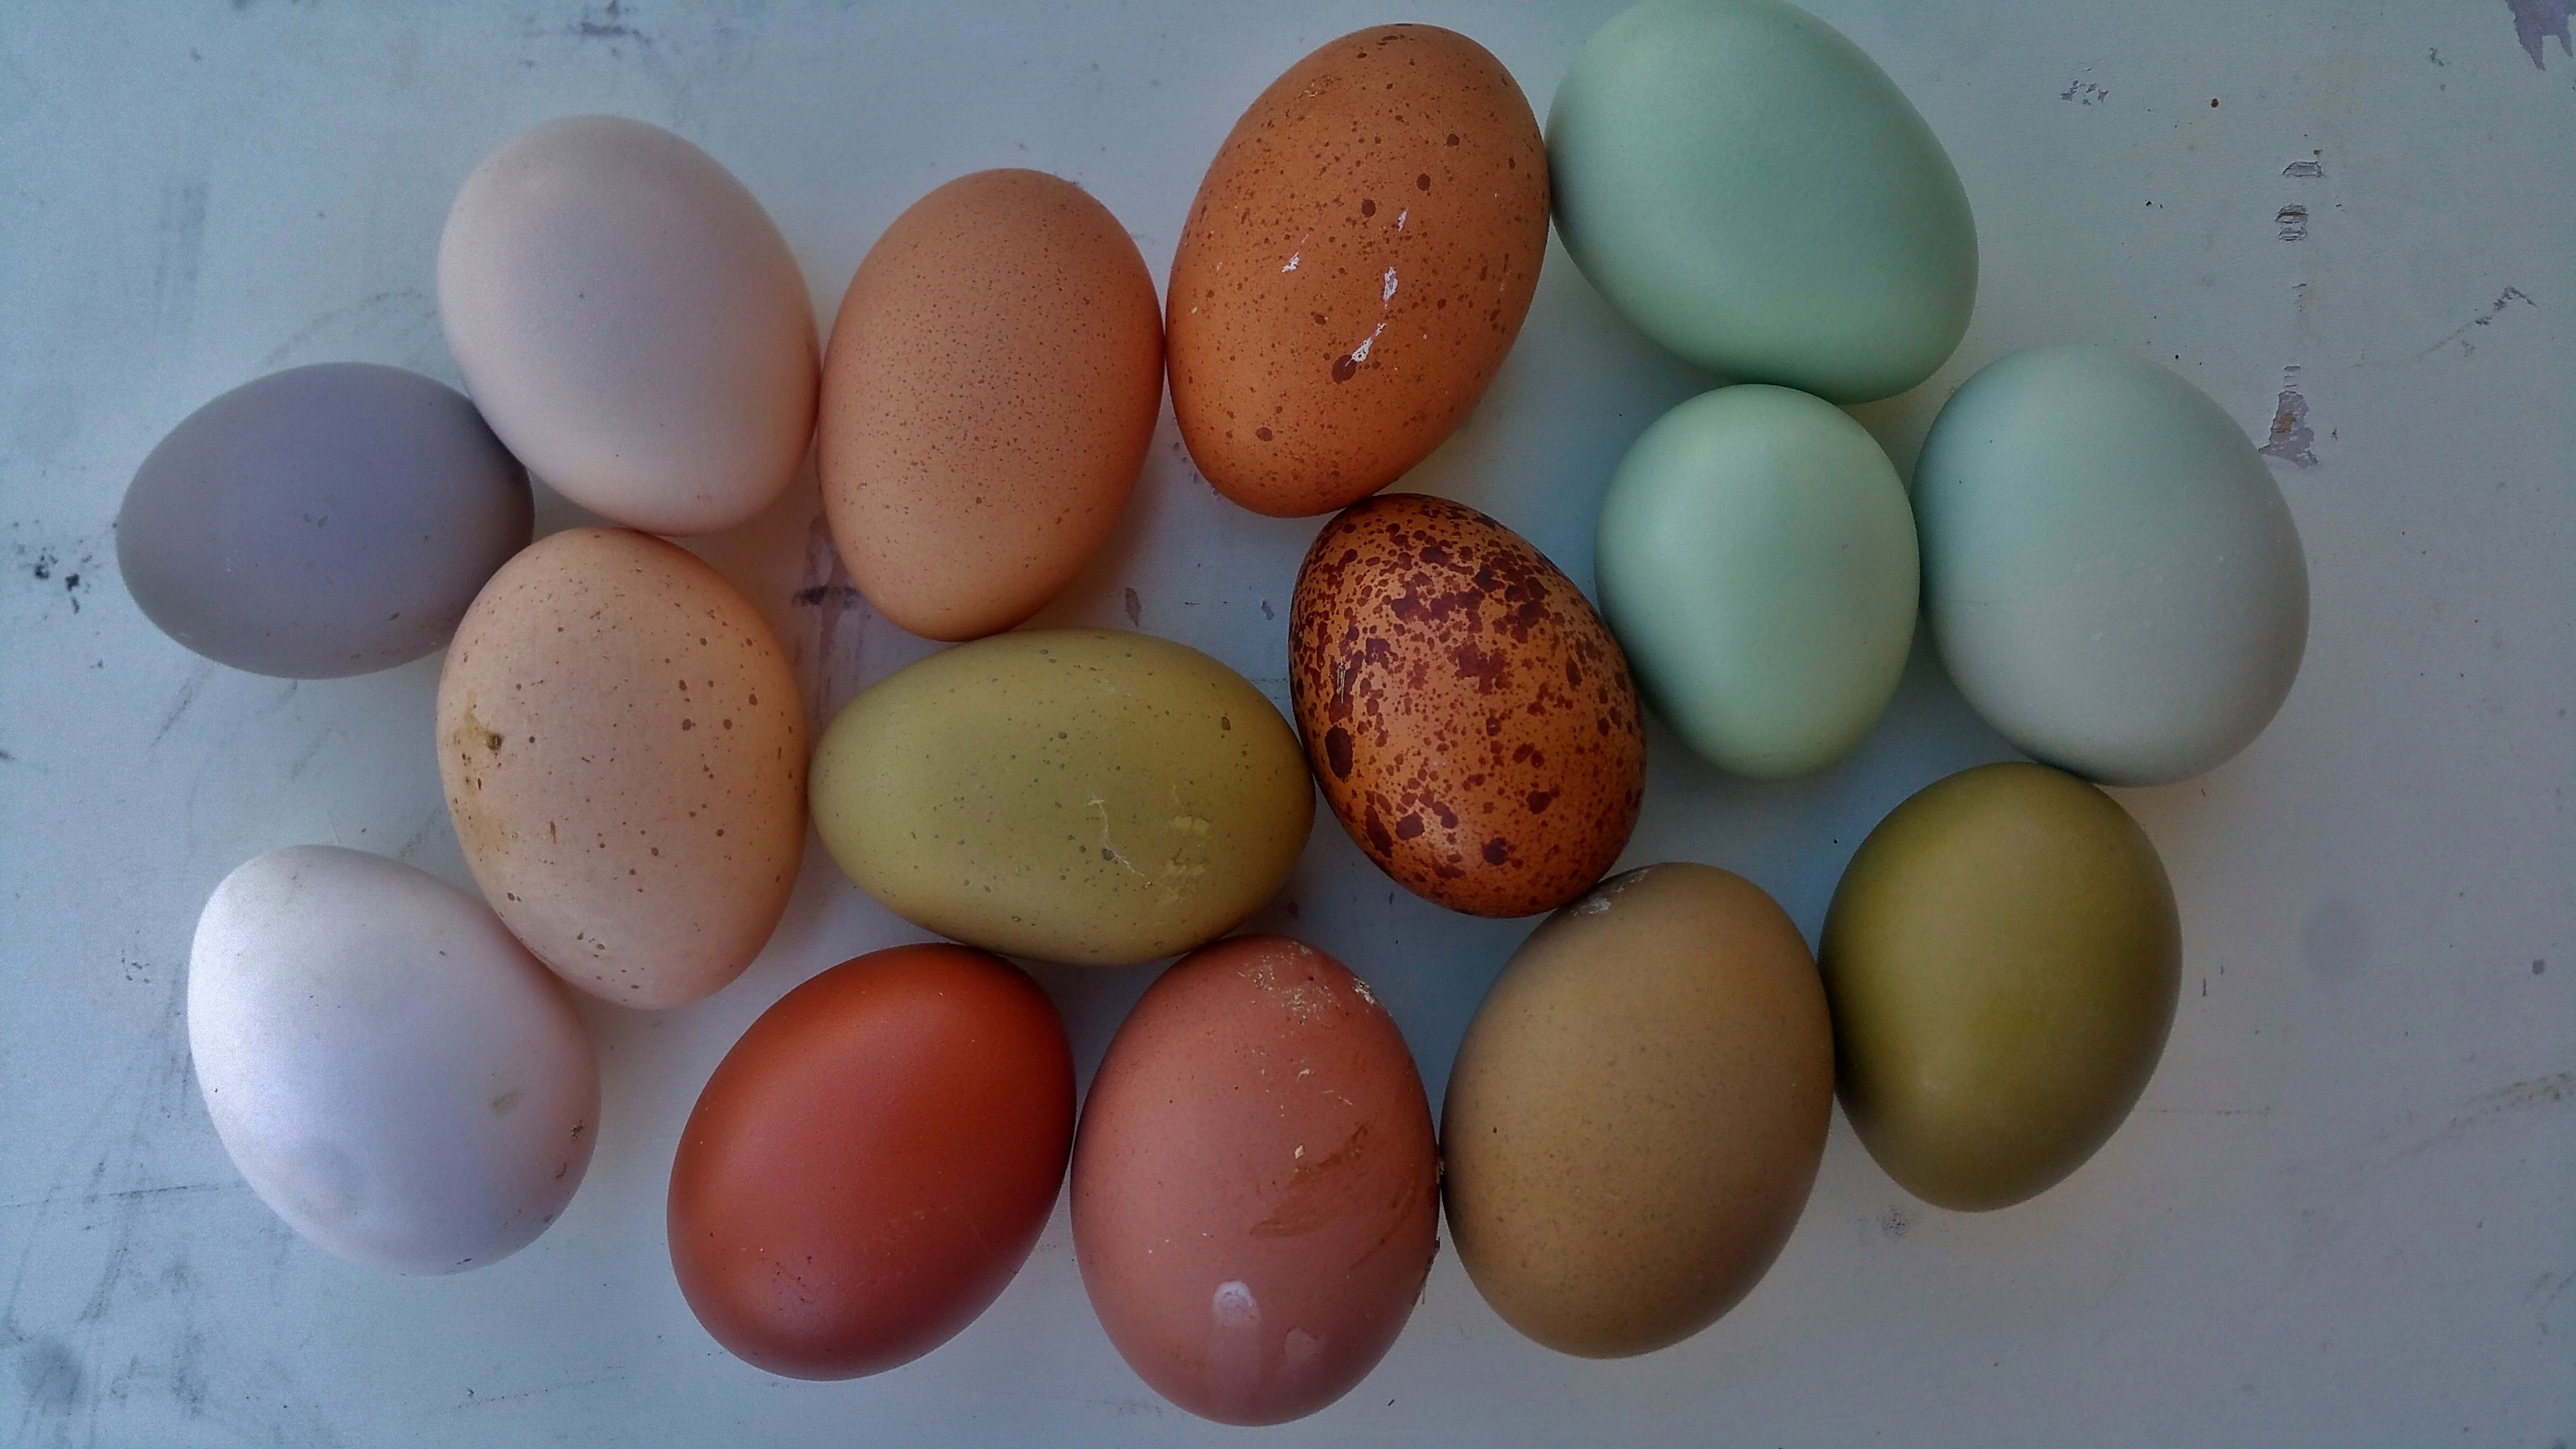 Eggs with new gray egg 2016-02-15 15.20.00